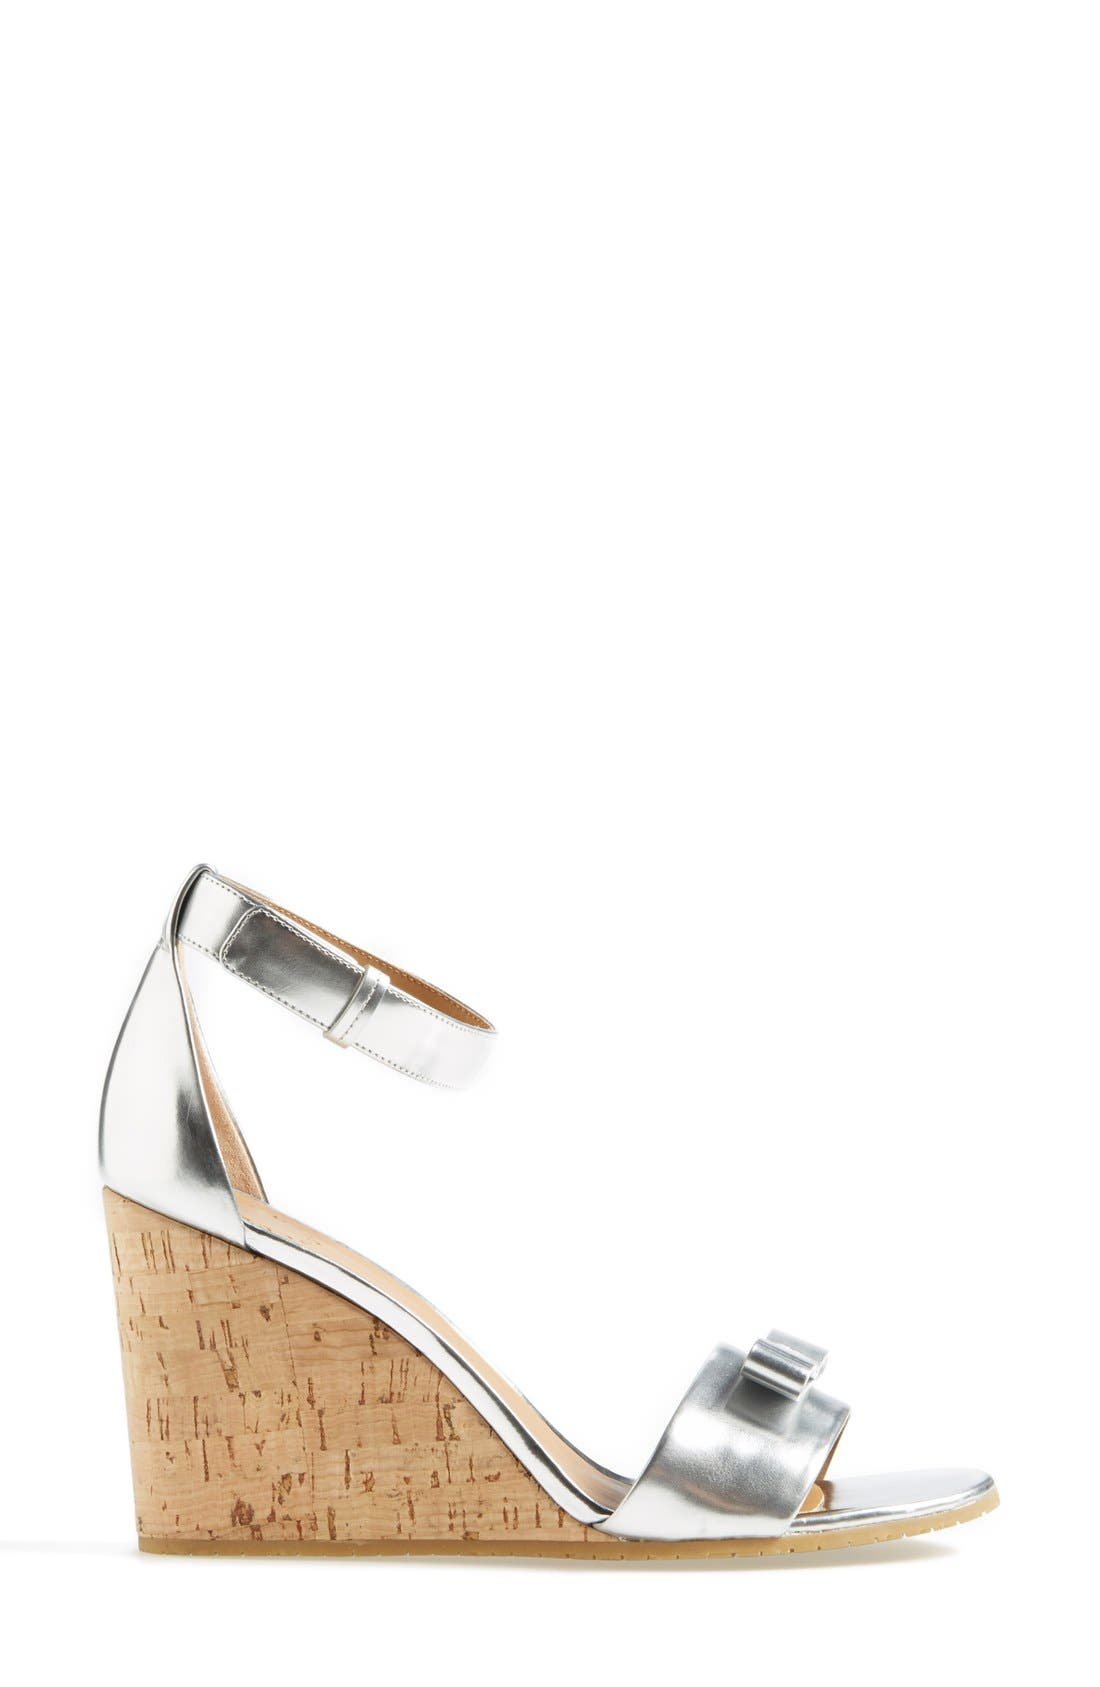 MARC BY MARC JACOBS 'Logo Disc' Sandal,                             Alternate thumbnail 2, color,                             040